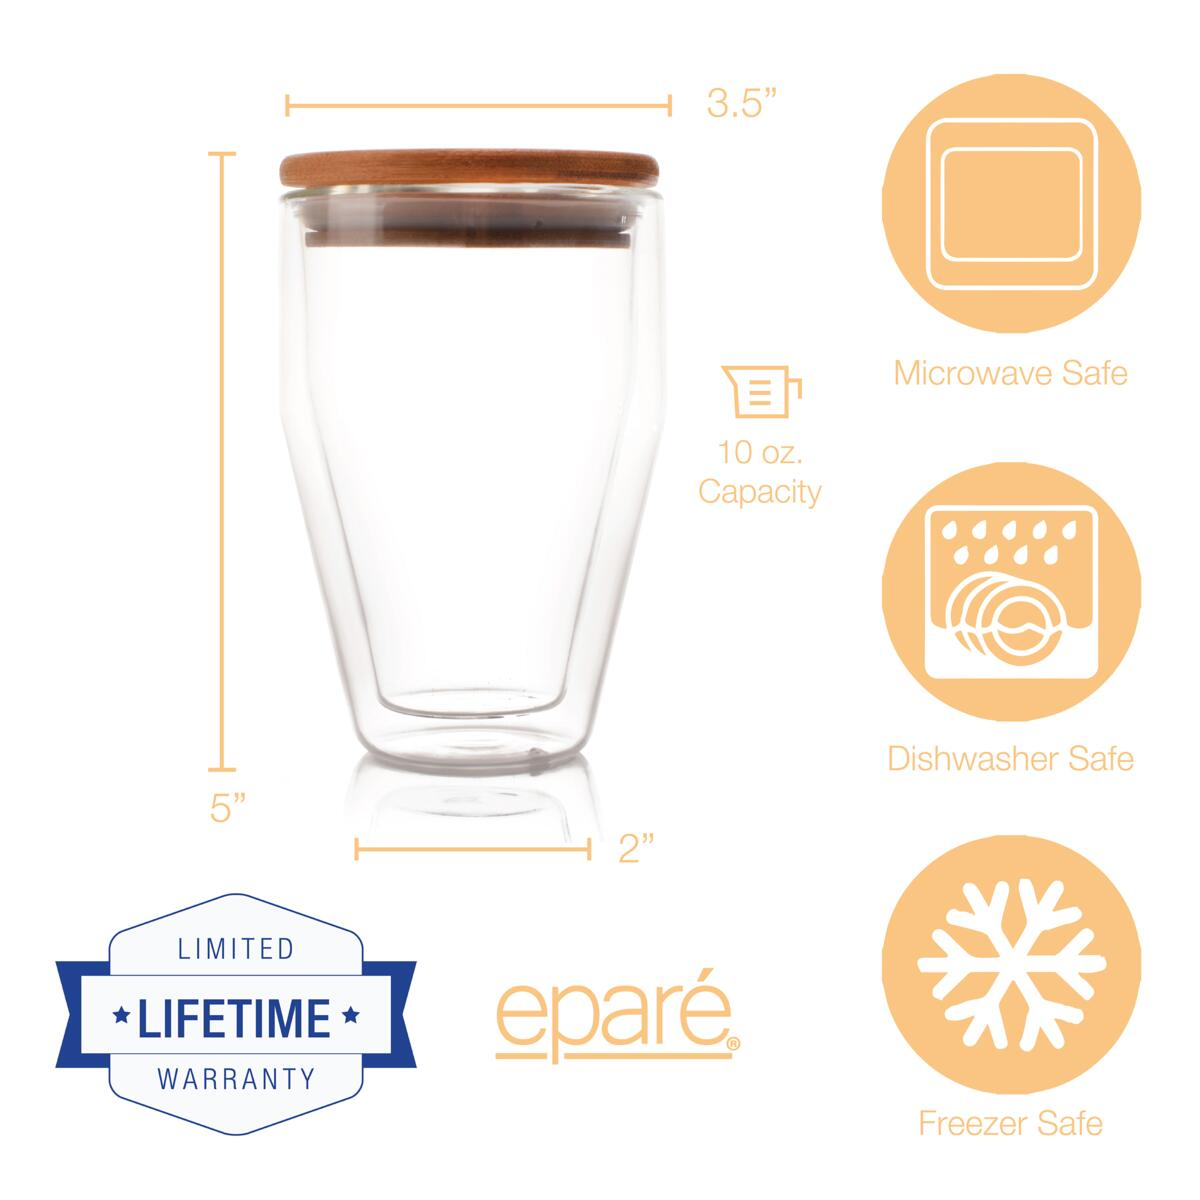 Eparé 10 oz Double-Wall Tumbler with Lid (Set of 2)